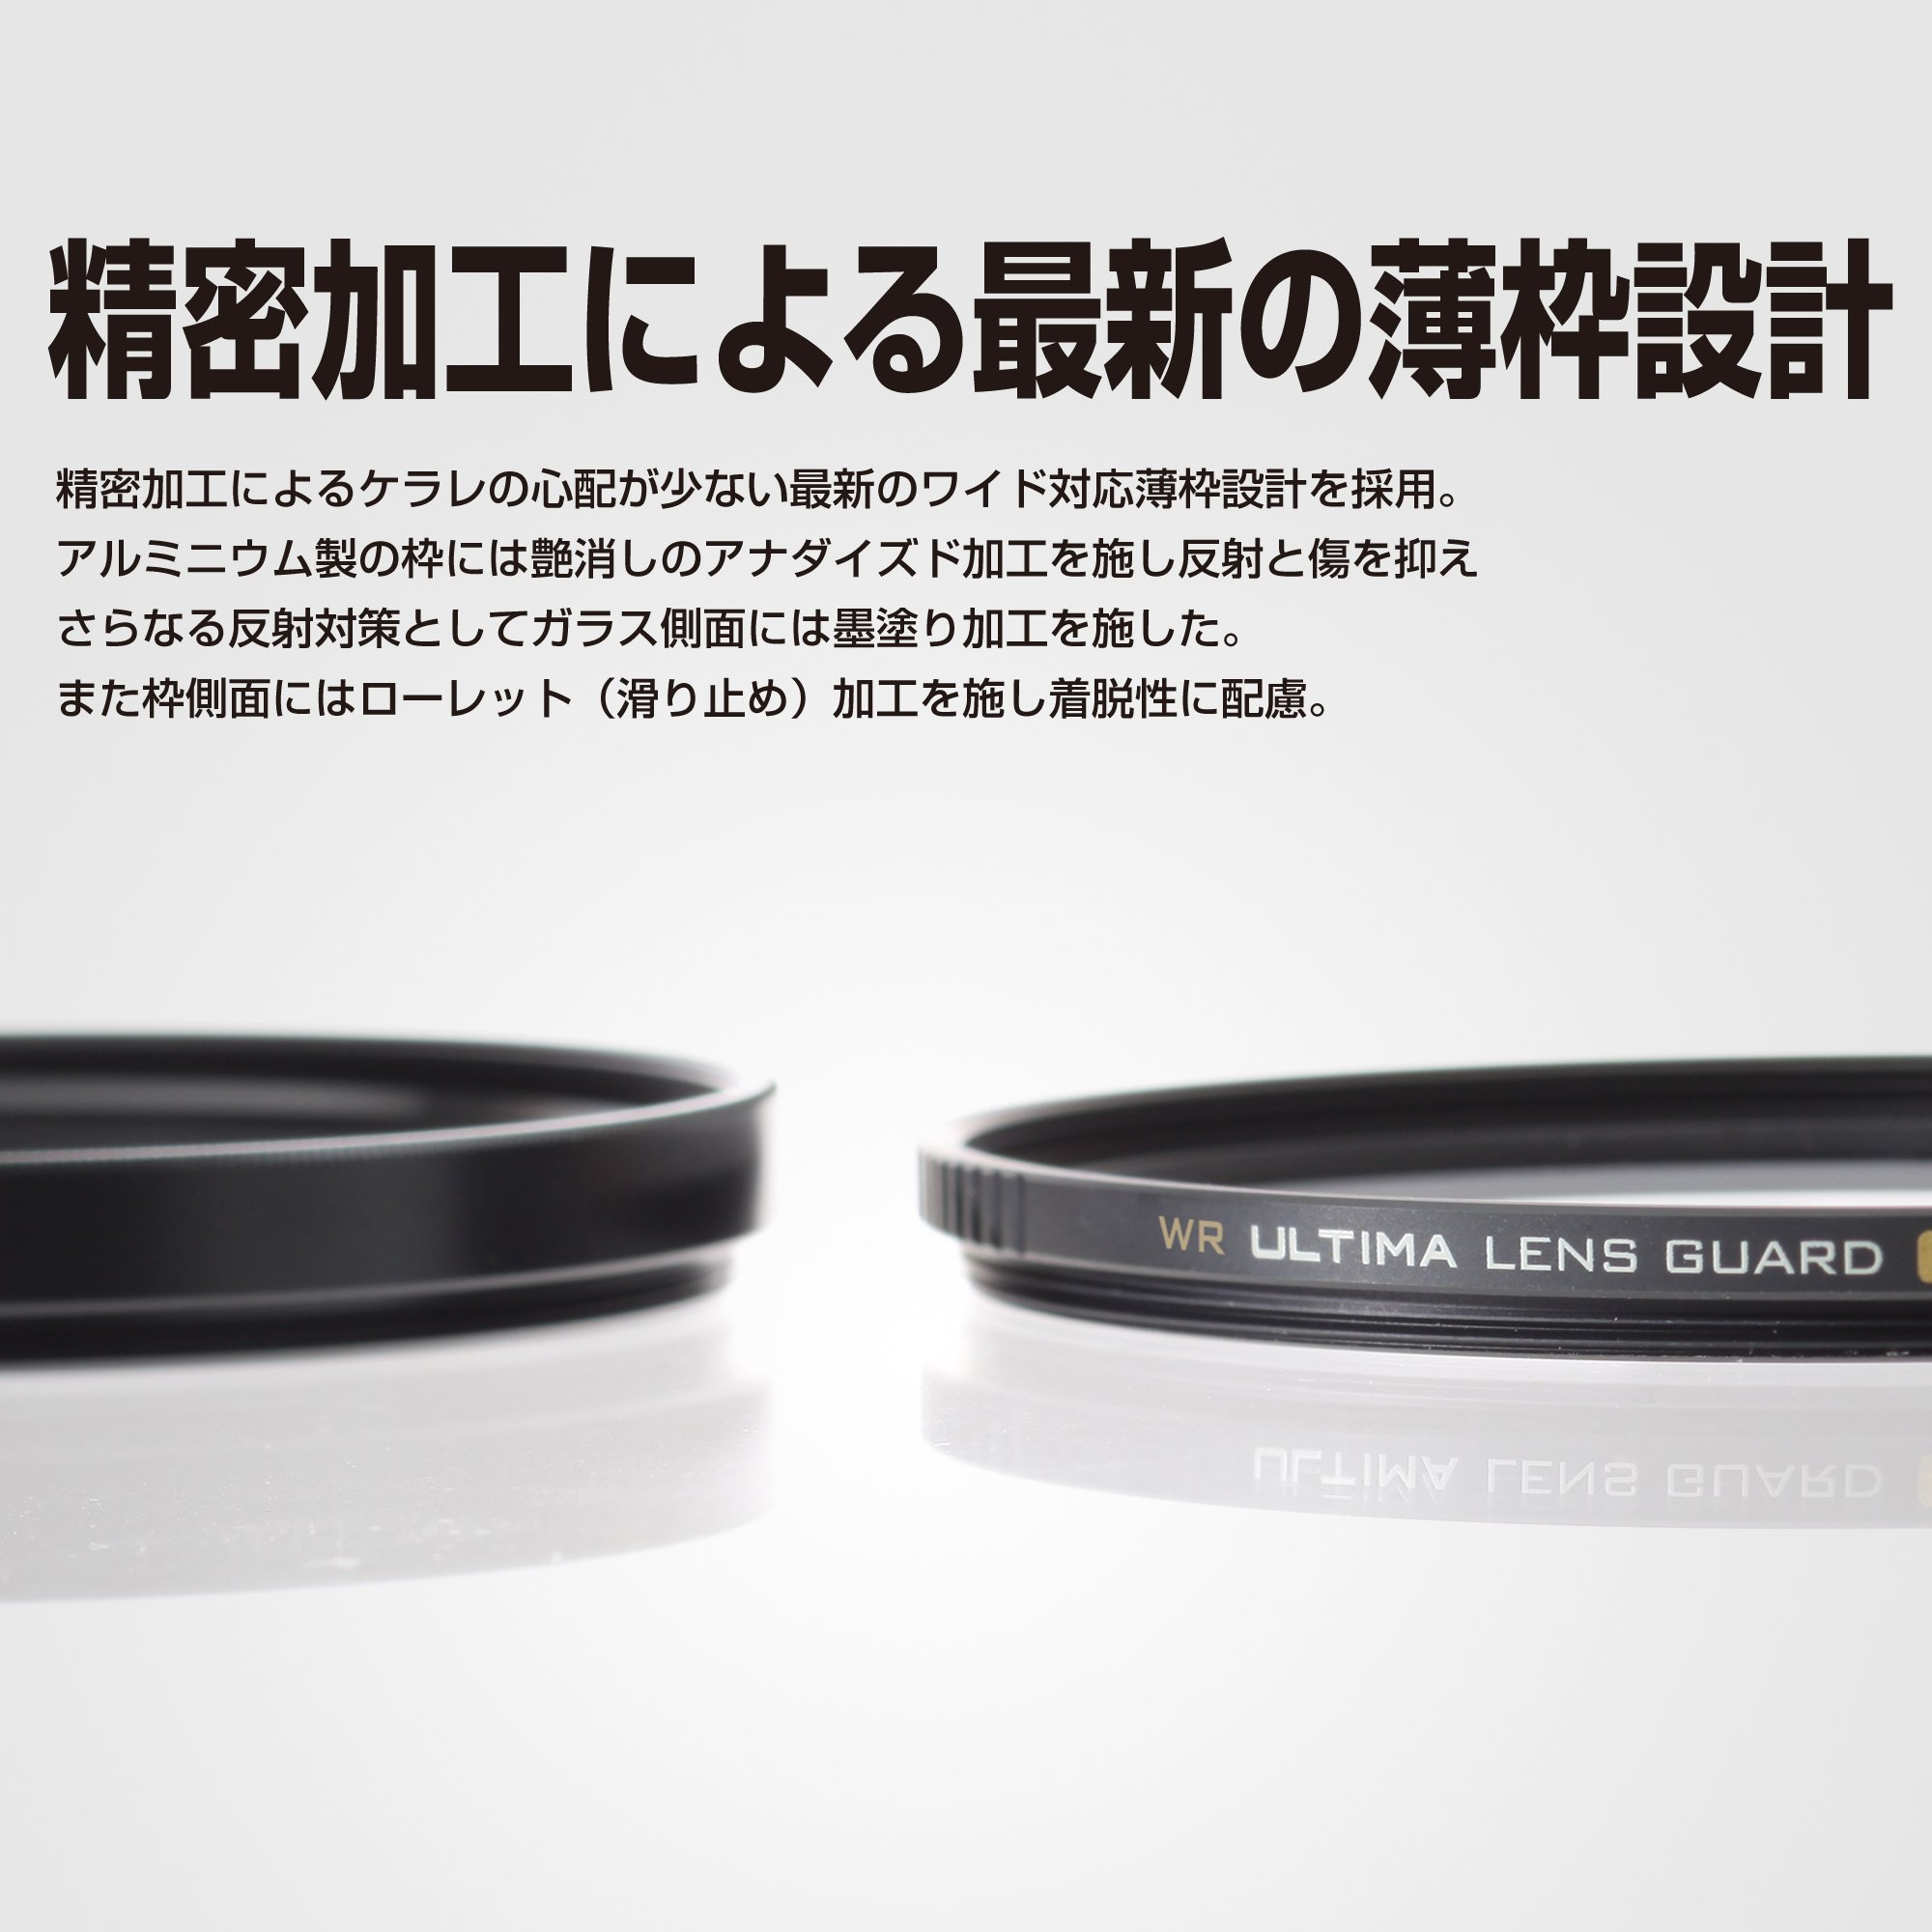 Kenko Lens Filter MC Protector 43mm Lens Protection for 343,111